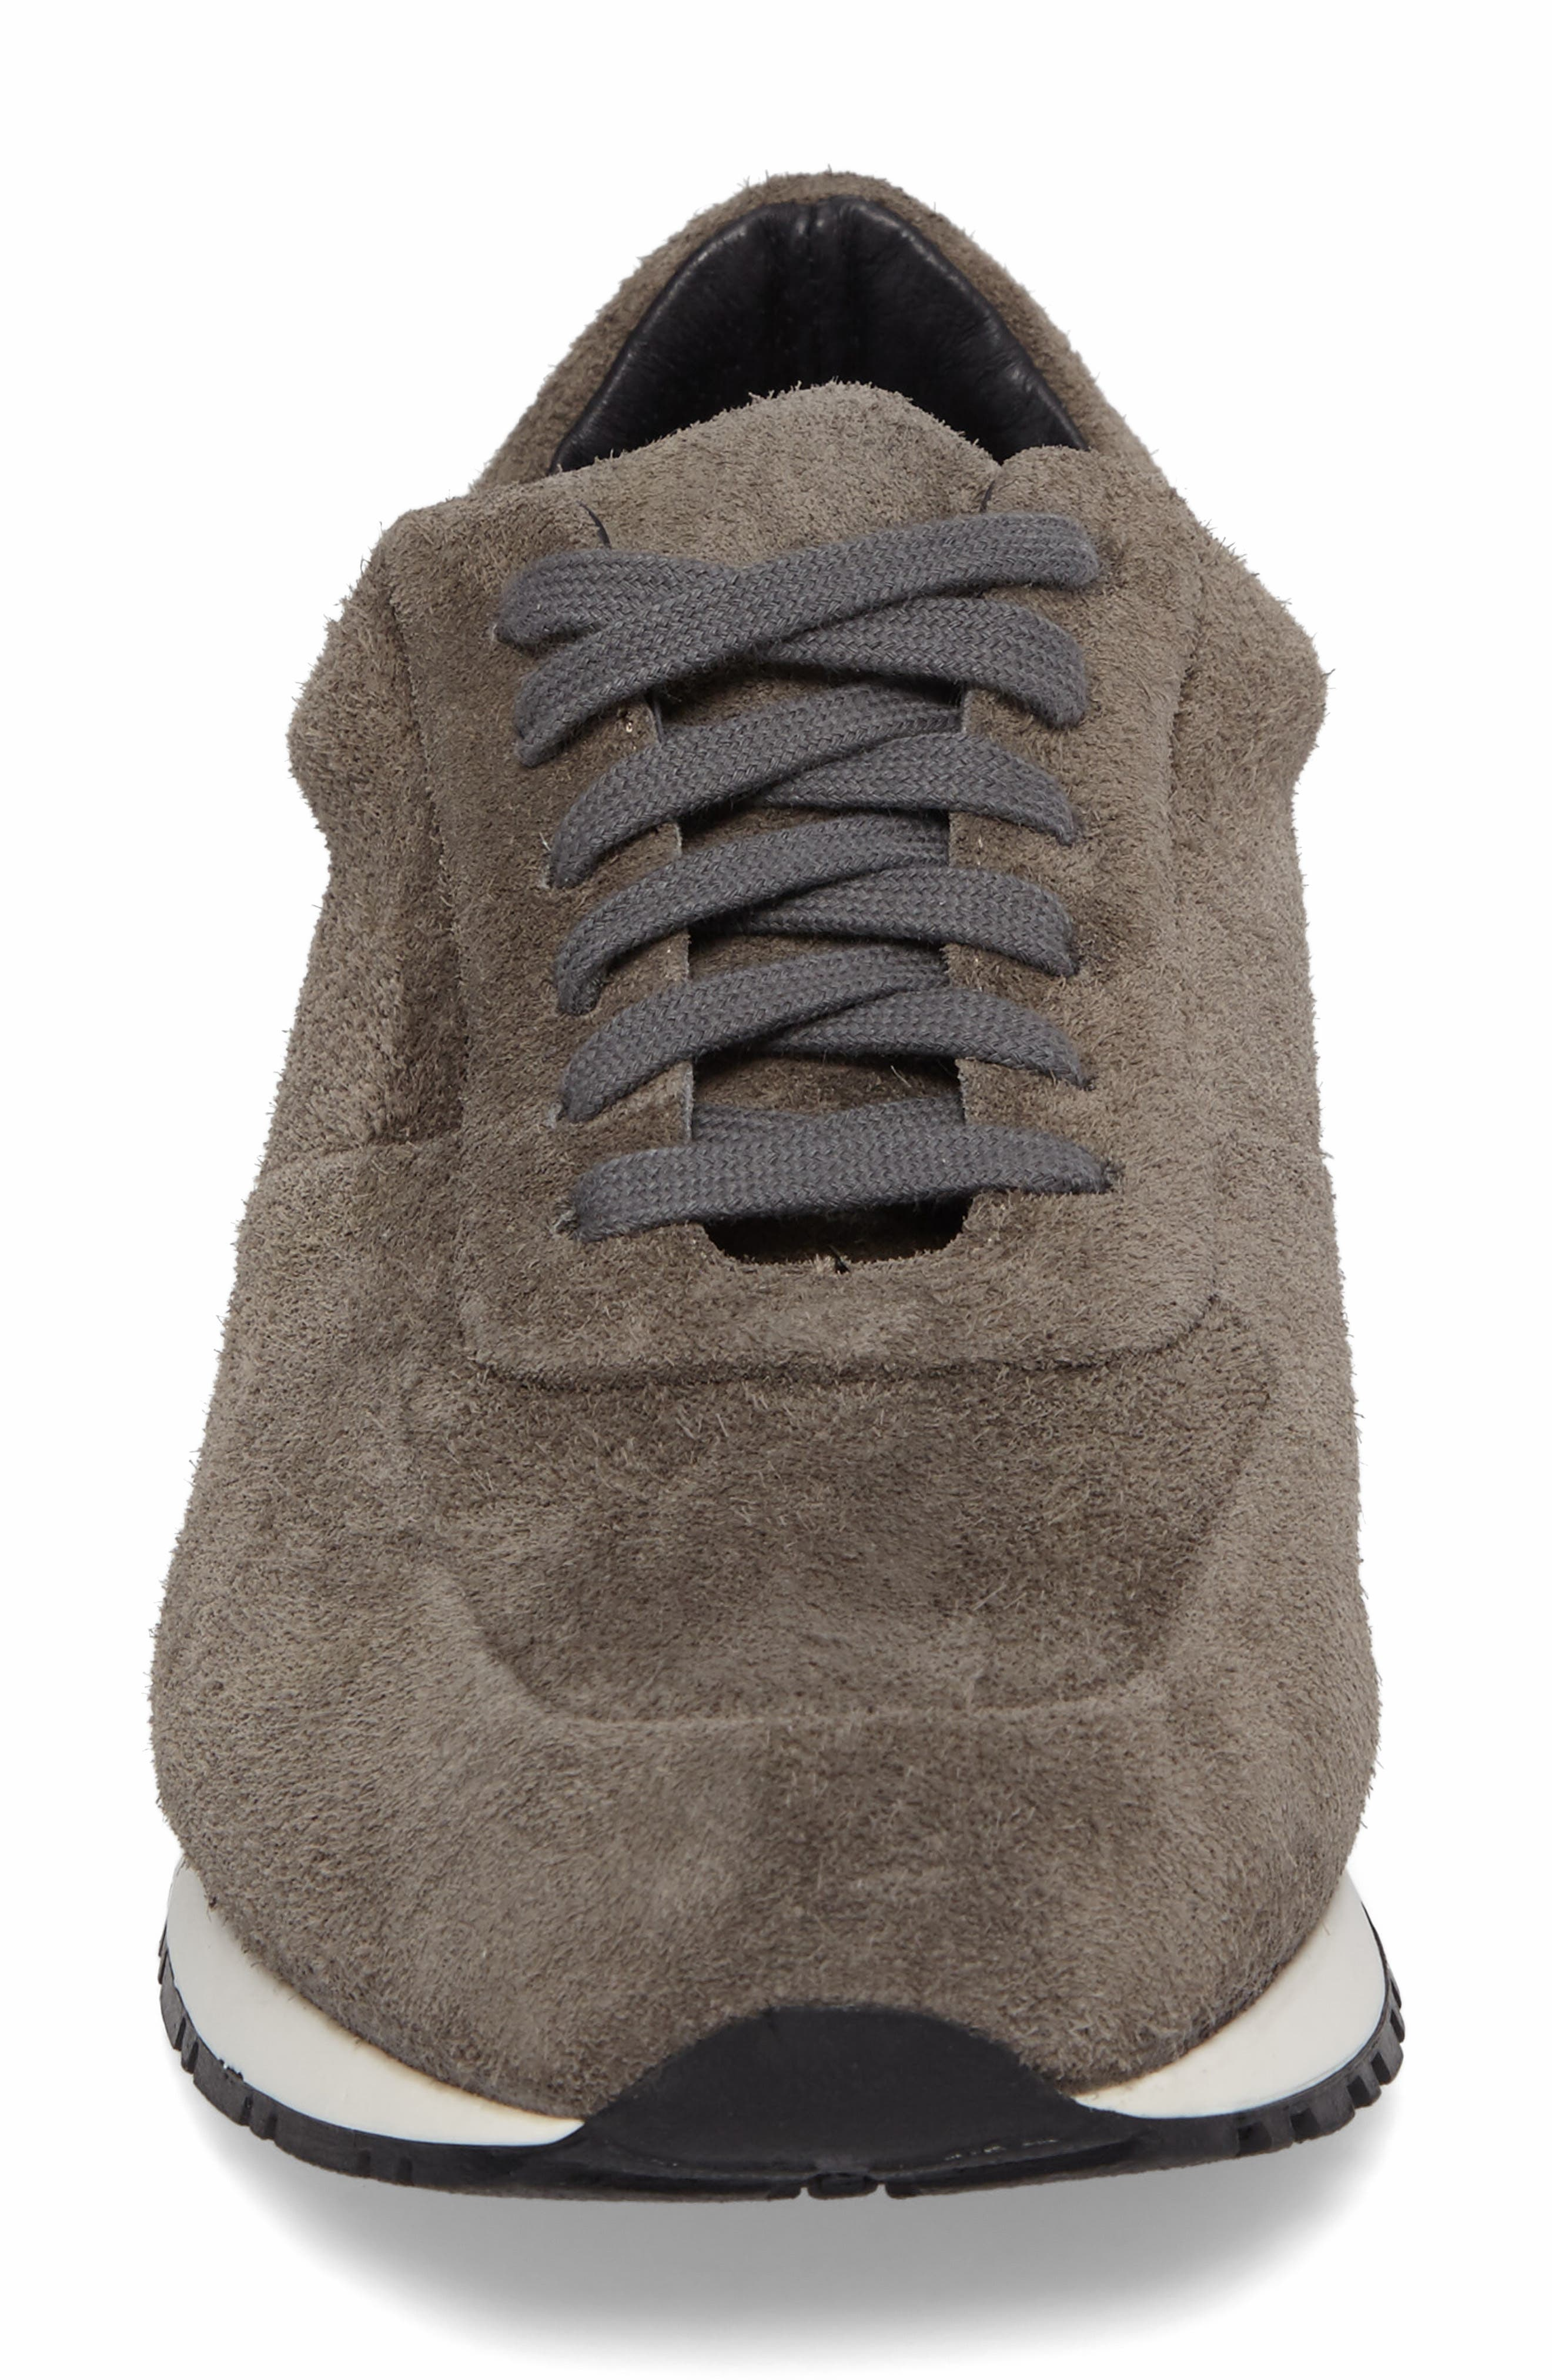 Hairy Sneaker,                             Alternate thumbnail 4, color,                             Grey Suede